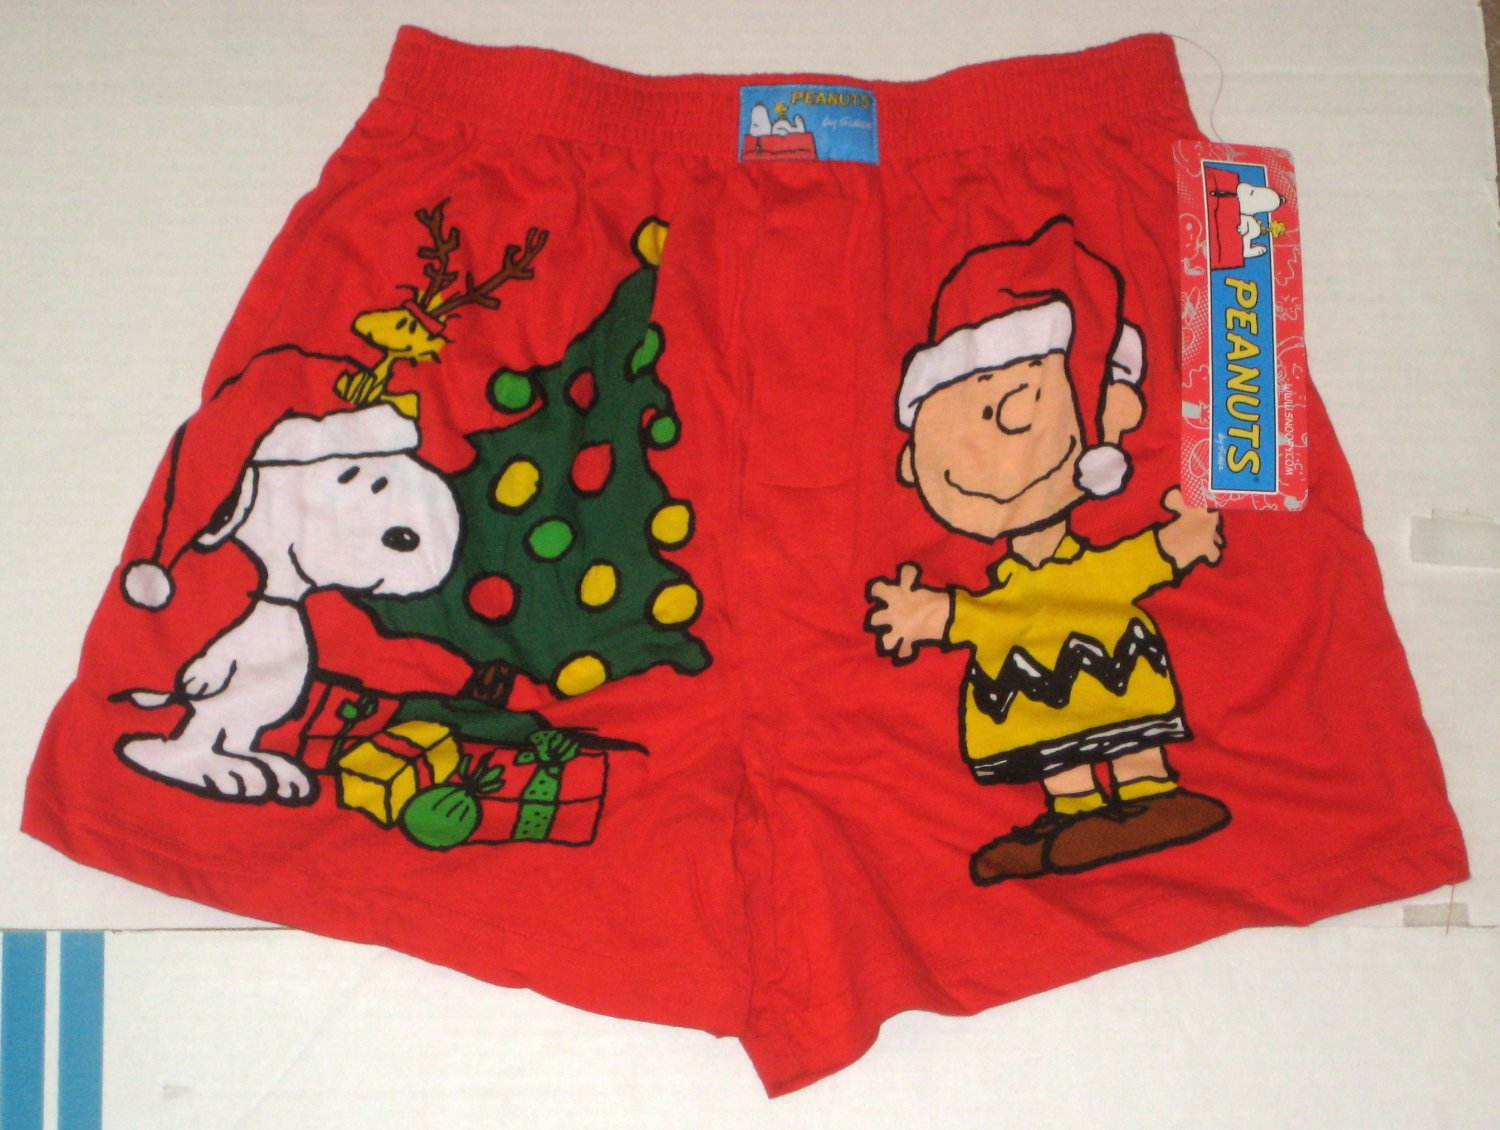 These red satin boxer shorts have a soft silky feel and feature Snoopy dancing along the front with